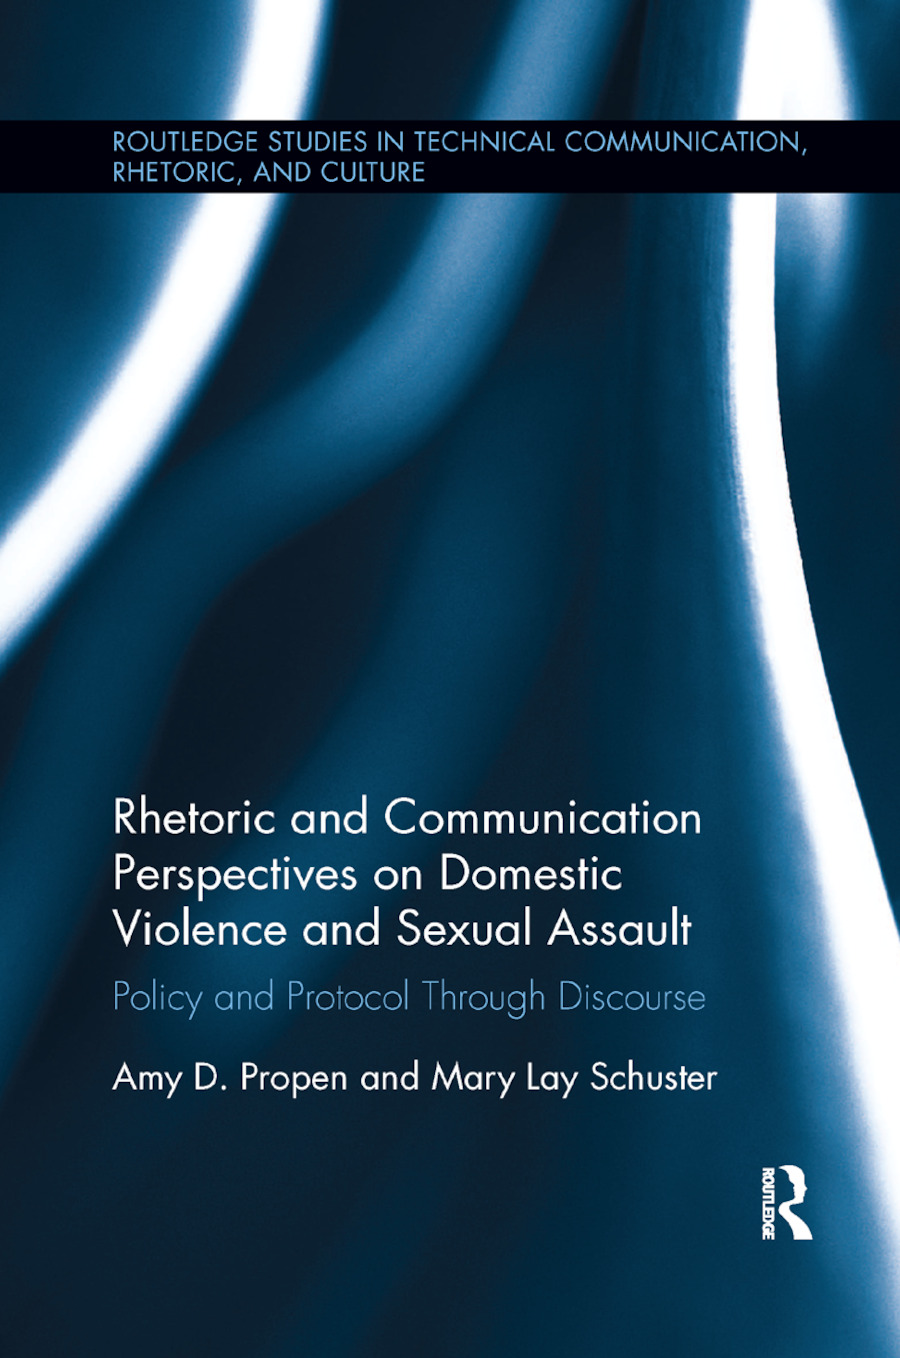 Rhetoric and Communication Perspectives on Domestic Violence and Sexual Assault: Policy and Protocol Through Discourse book cover